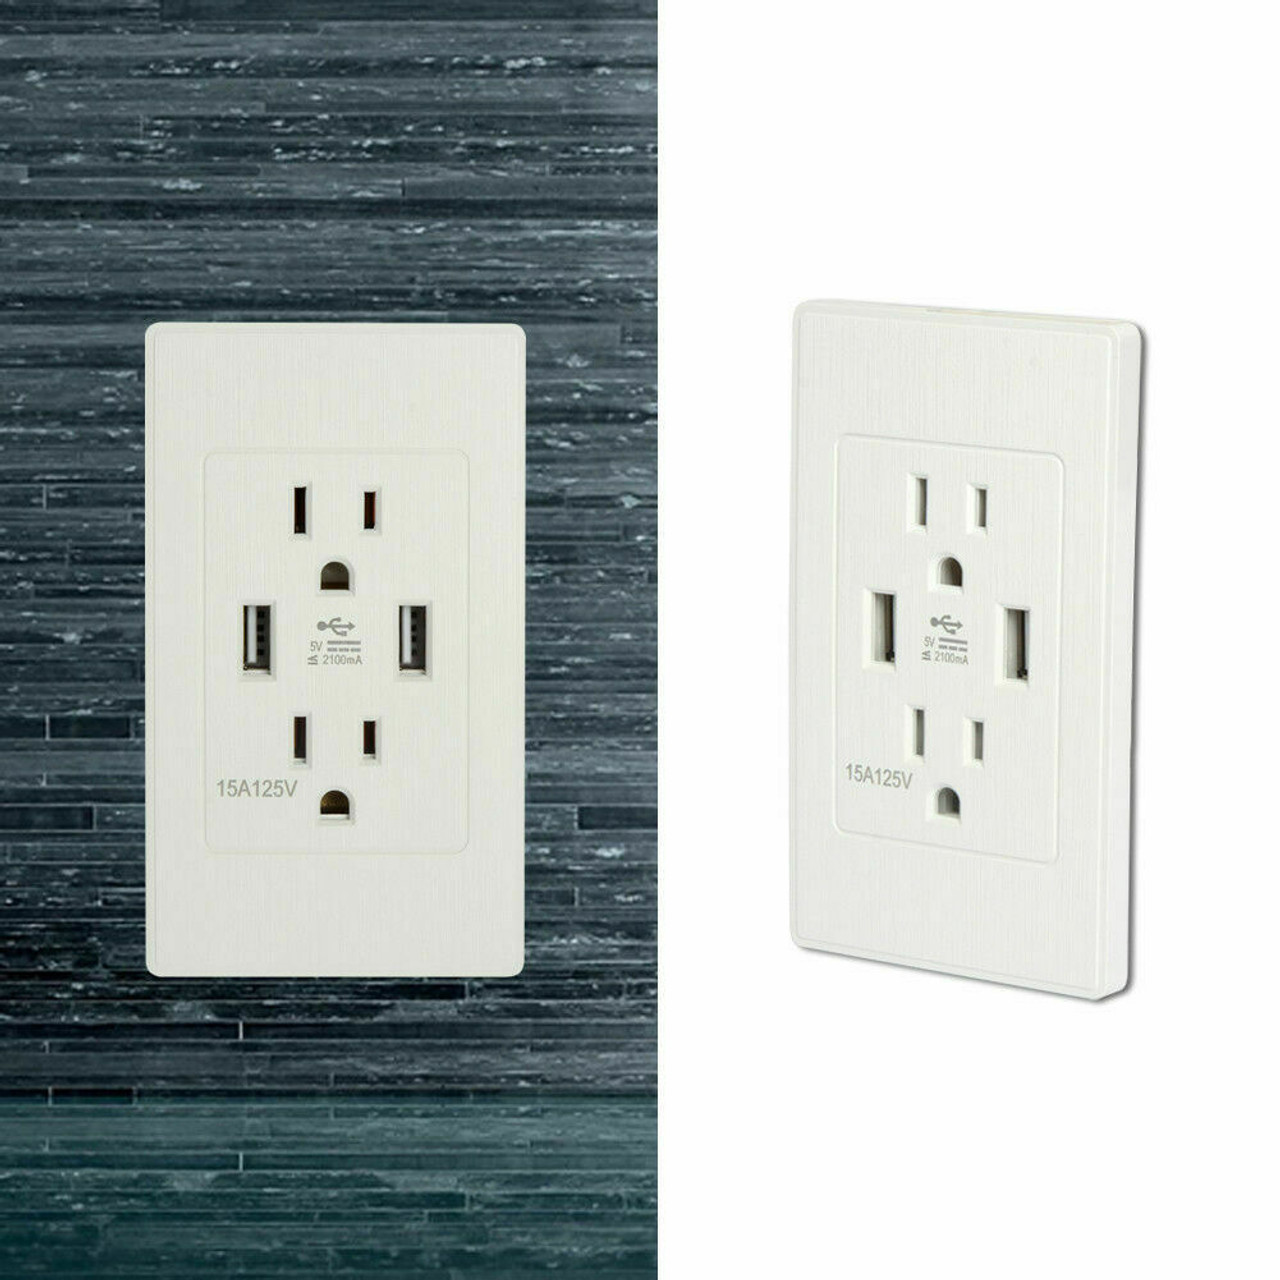 Dual USB Port Wall Socket Charger AC Power Receptacle Outlet Plate Panel 15A 110